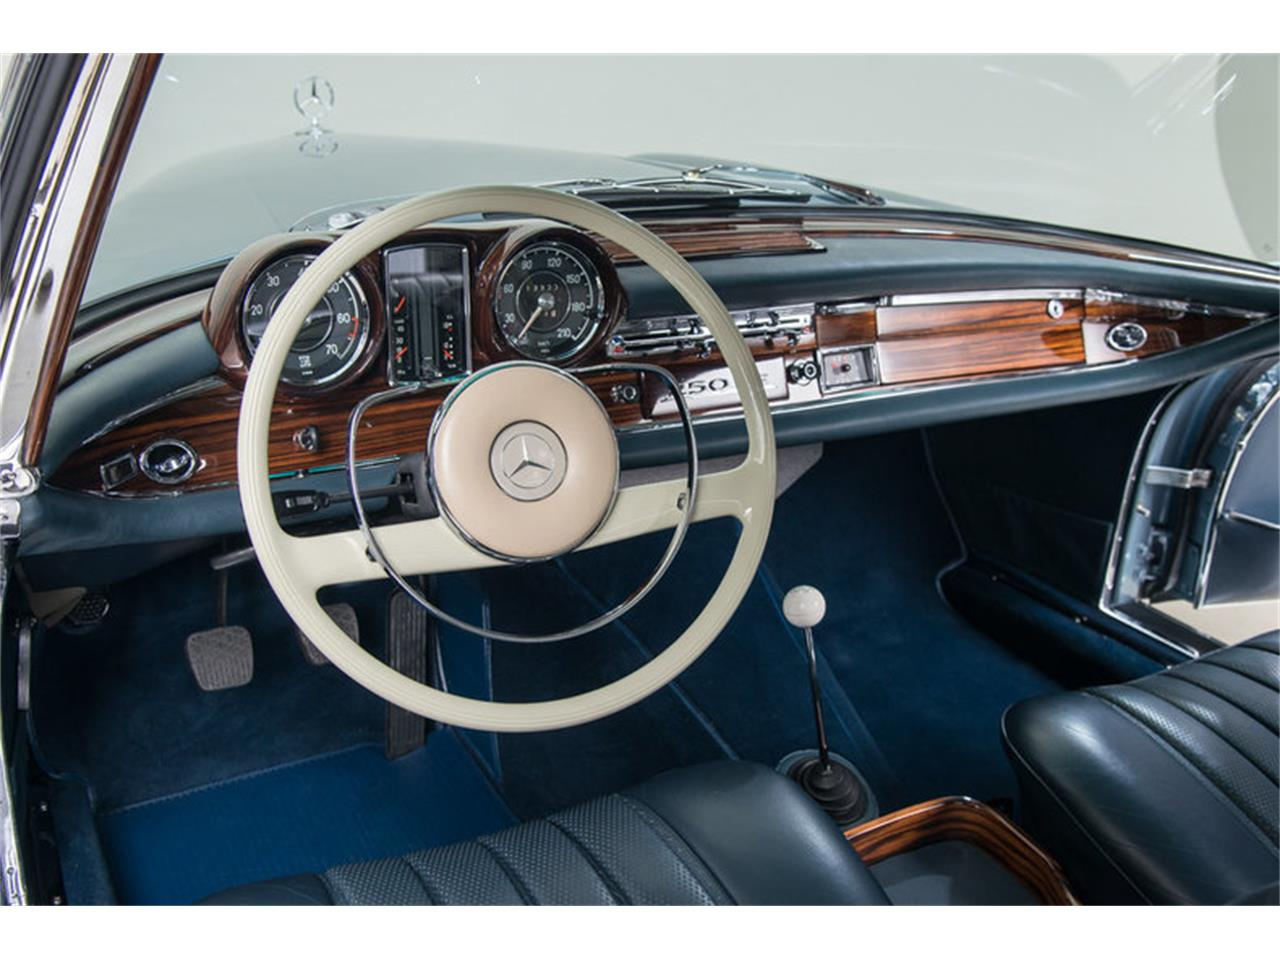 Large Picture of 1966 Mercedes-Benz 250SE located in California Auction Vehicle Offered by Canepa - DSVZ